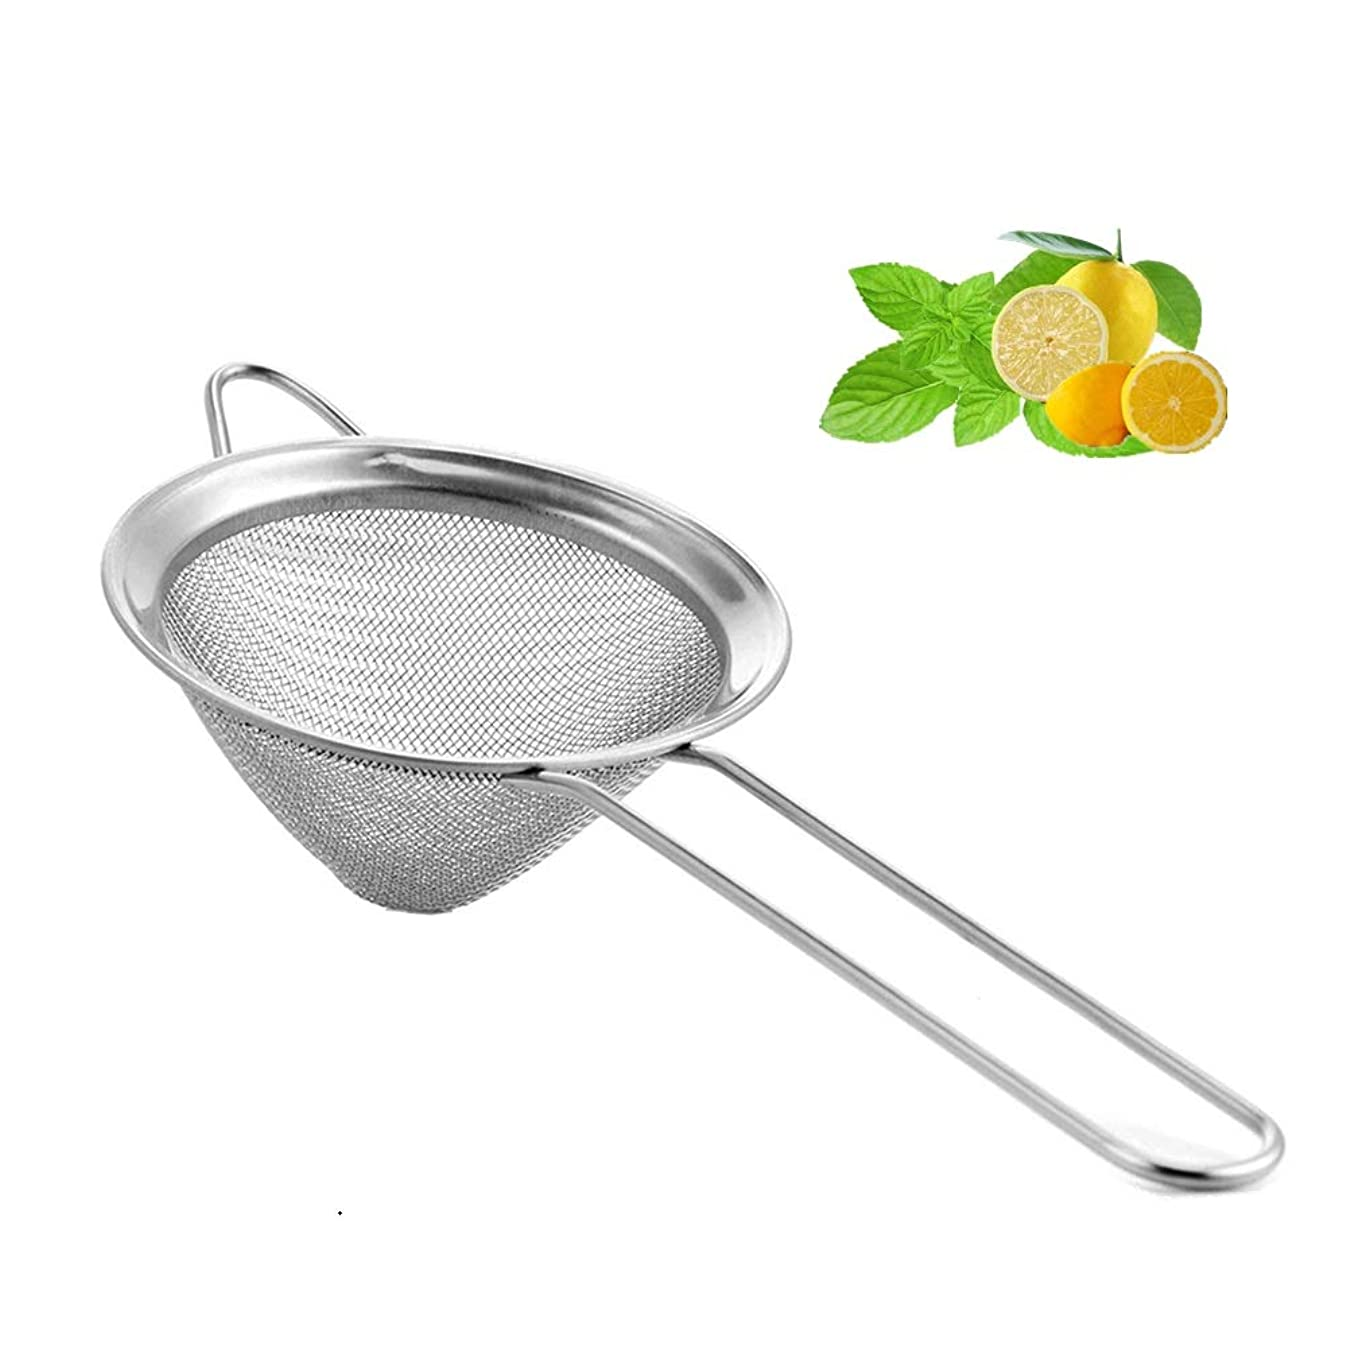 Fine Mesh Strainer For Bar -Stainless Steel Conical Strainer For Cocktail Drink Bar Strainers Bartender Bar Tool, 4 Inch, CTSN0010 (Silver)